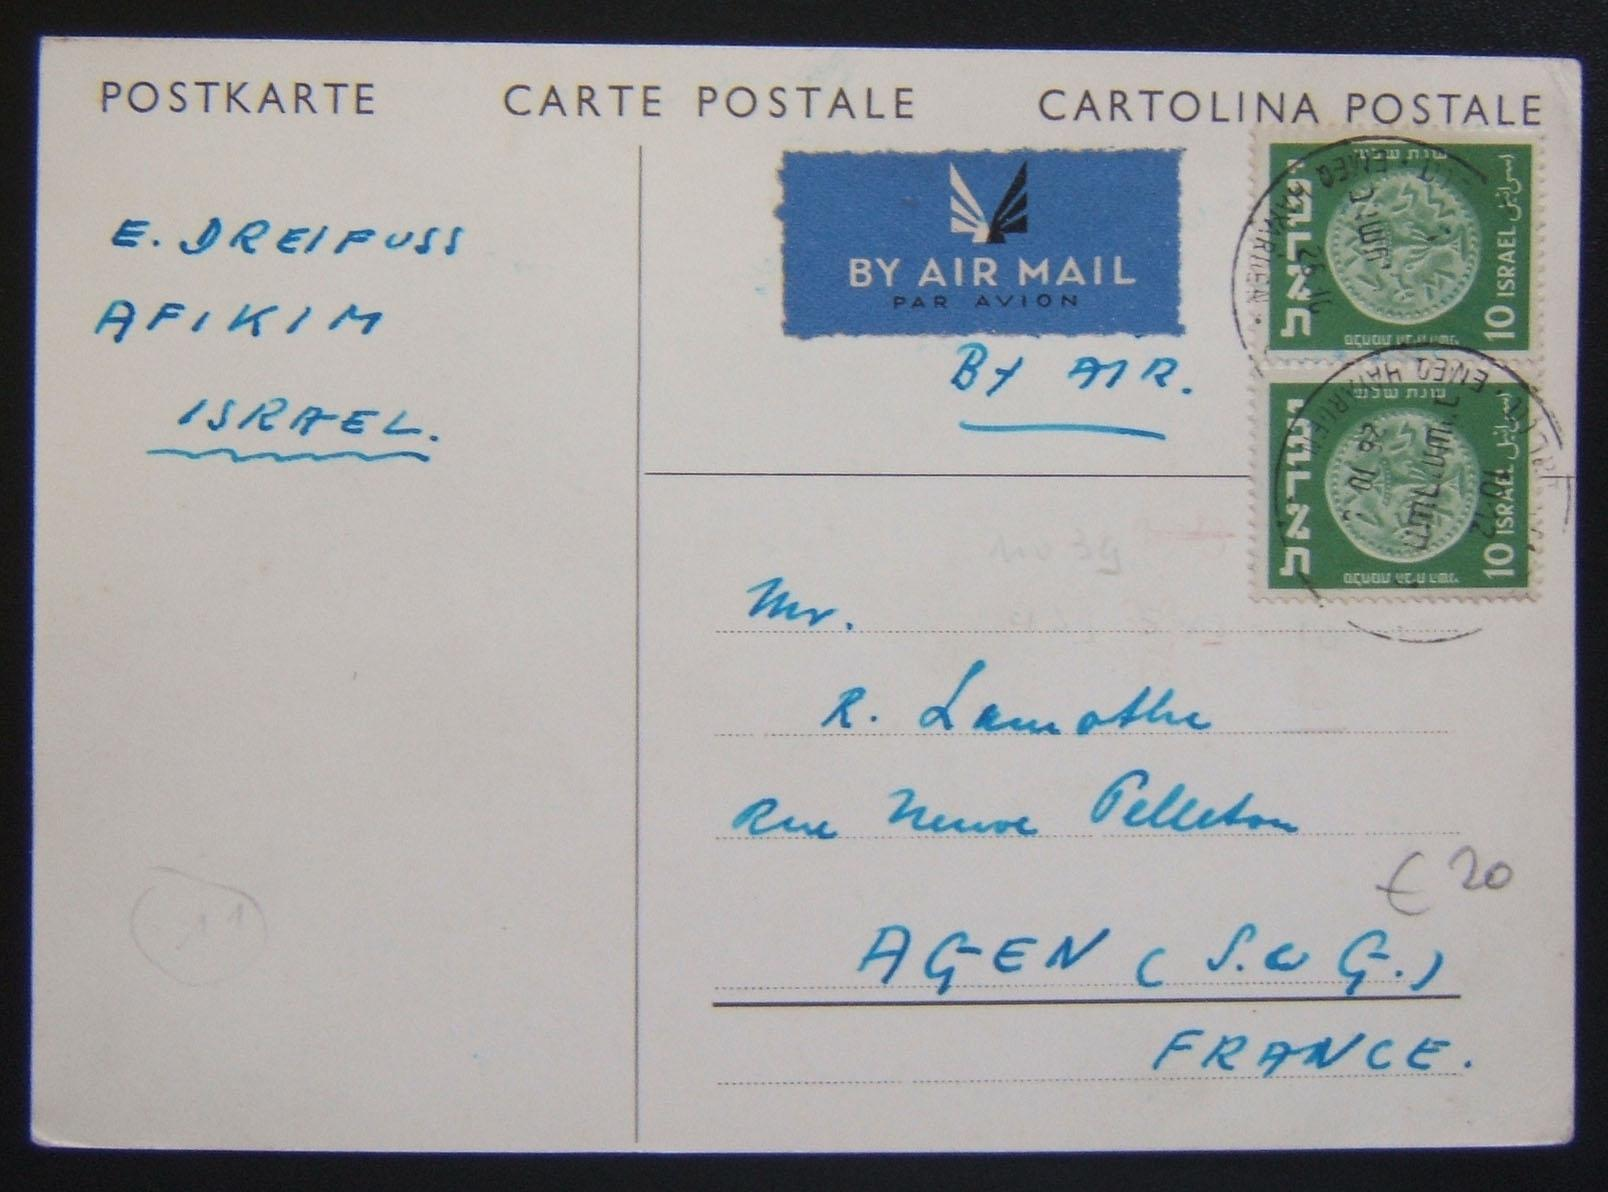 1951 2nd Coinage airmailed pc: 26-10-1951 a/m pc ex AFIKIM to FRANCE franked 20pr per FA-2a period rate using 2x 10pr (Ba23) tied by 2 strikes of local pmk; scarce multiple frankin